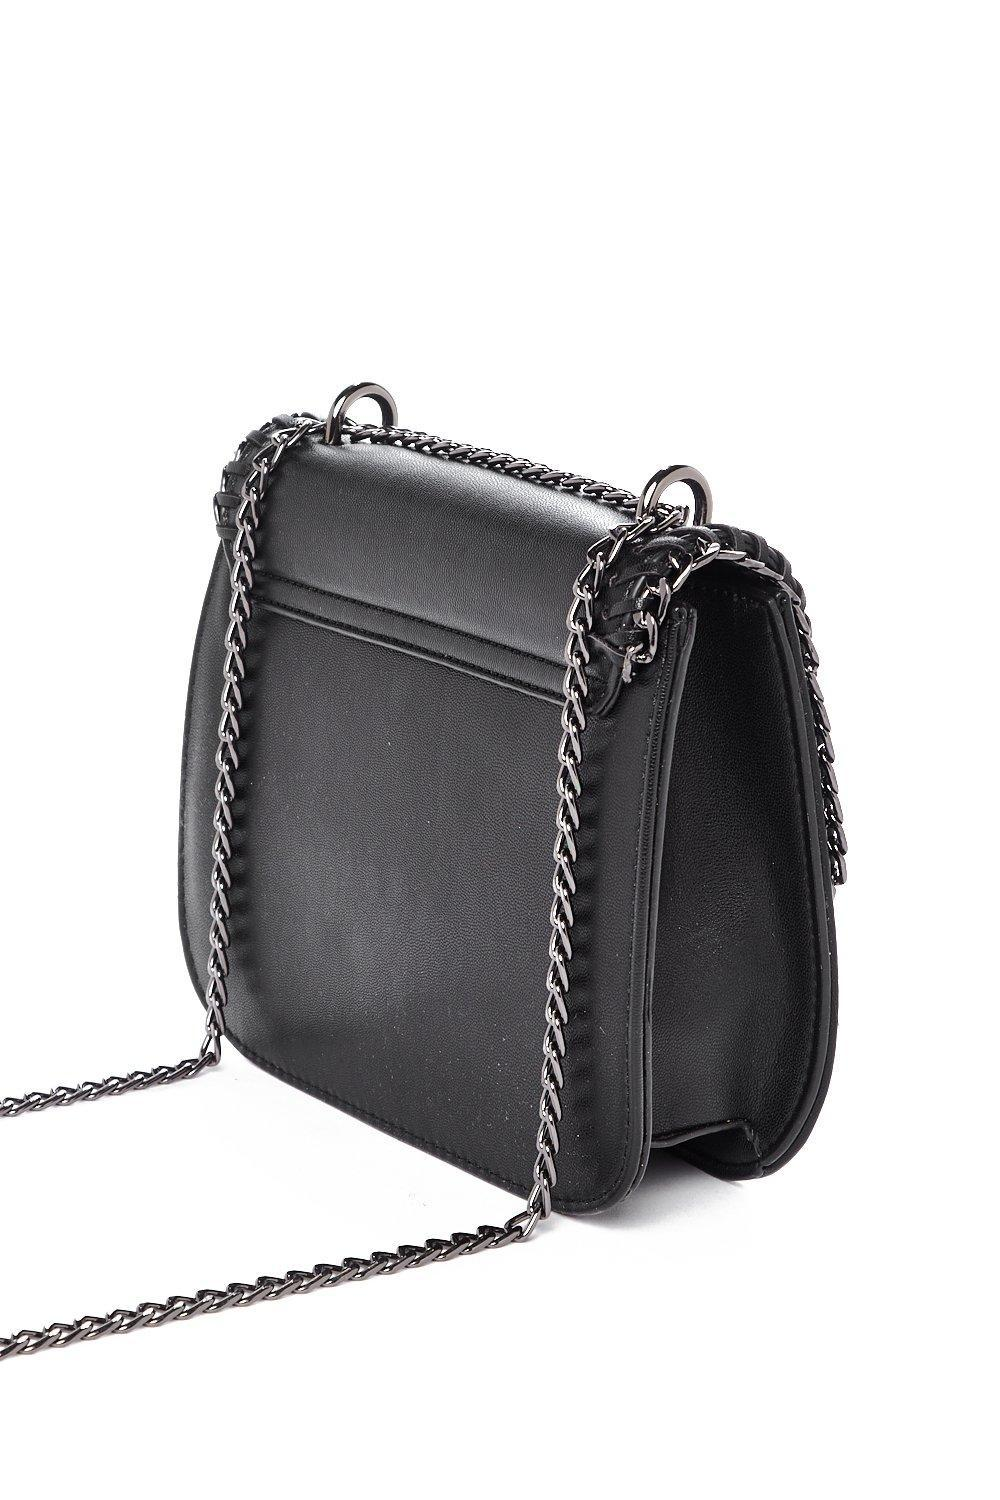 Nasty Gal Want Chain And Simple Crossbody Bag in Black